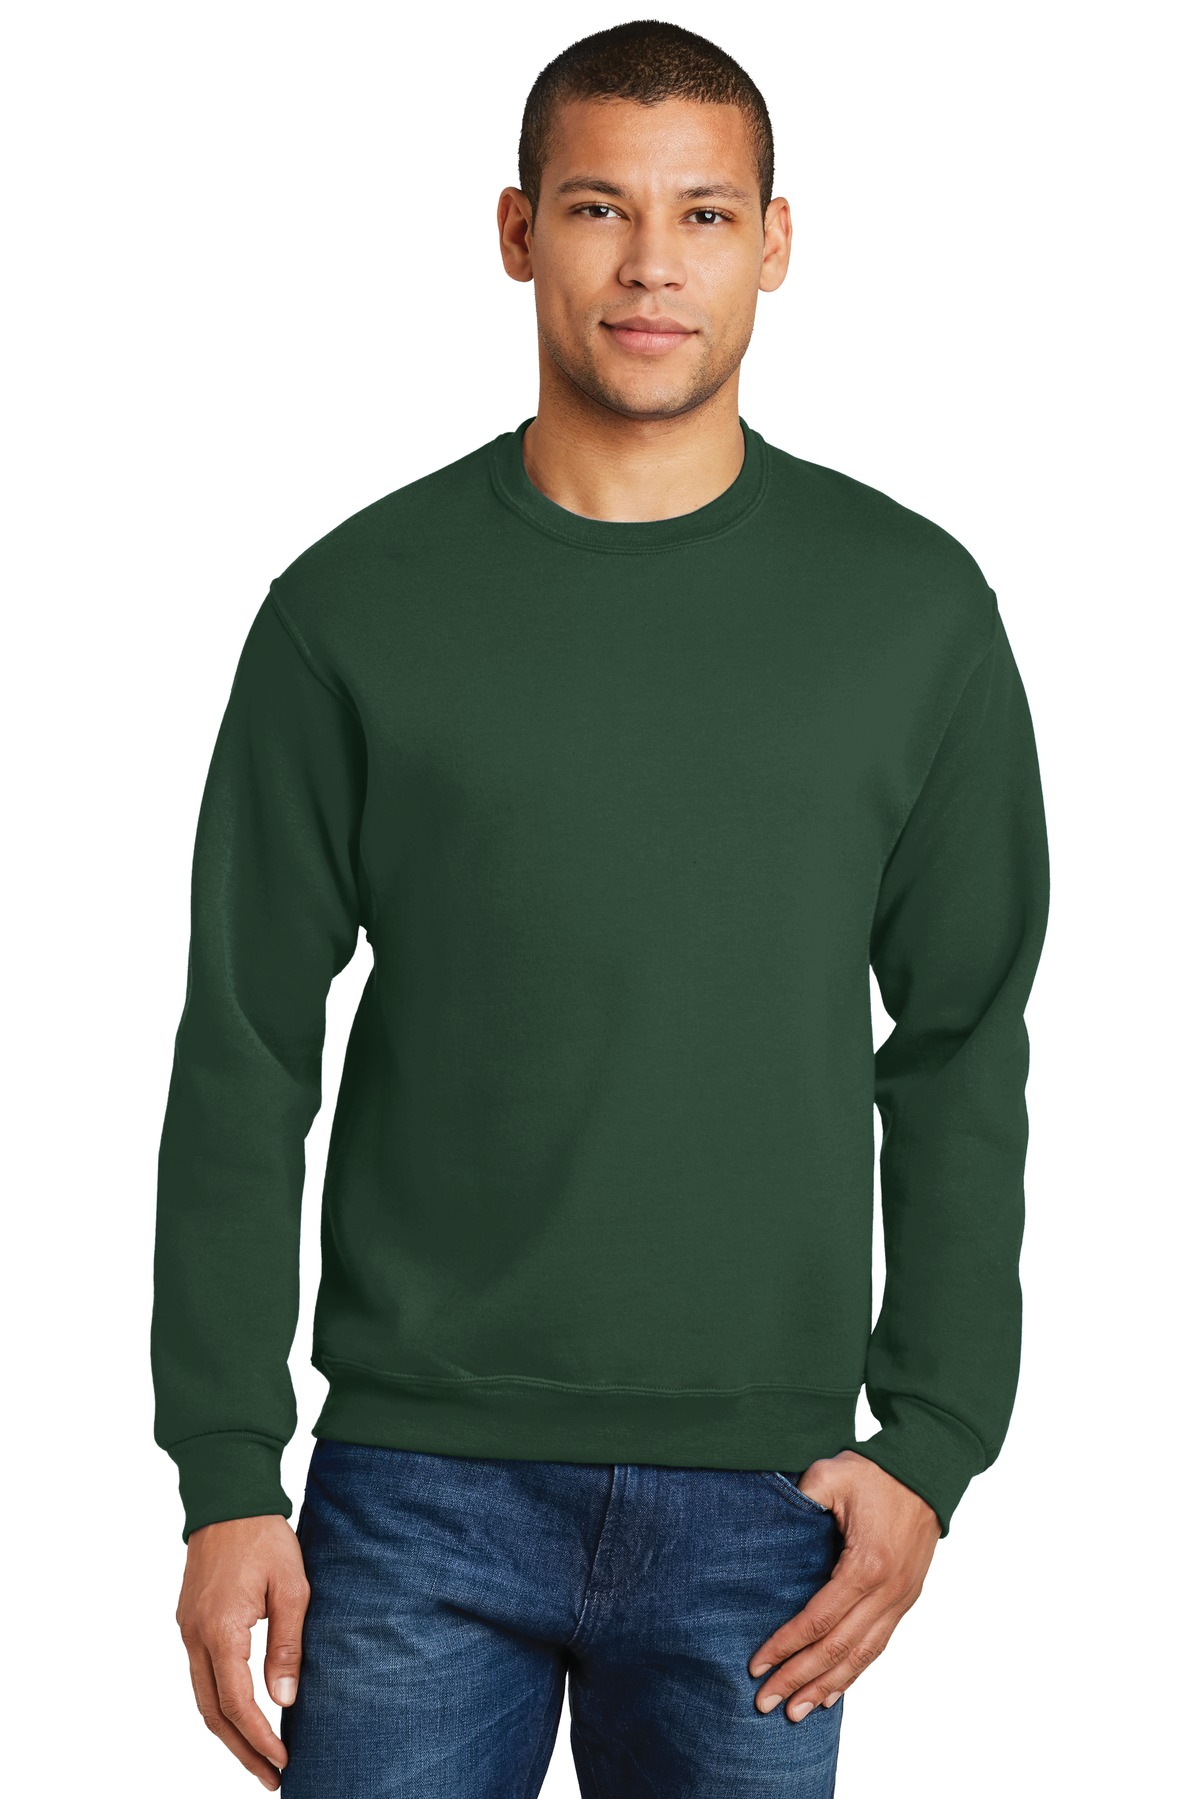 JERZEES ®  - NuBlend ®  Crewneck Sweatshirt.  562M - Forest Green